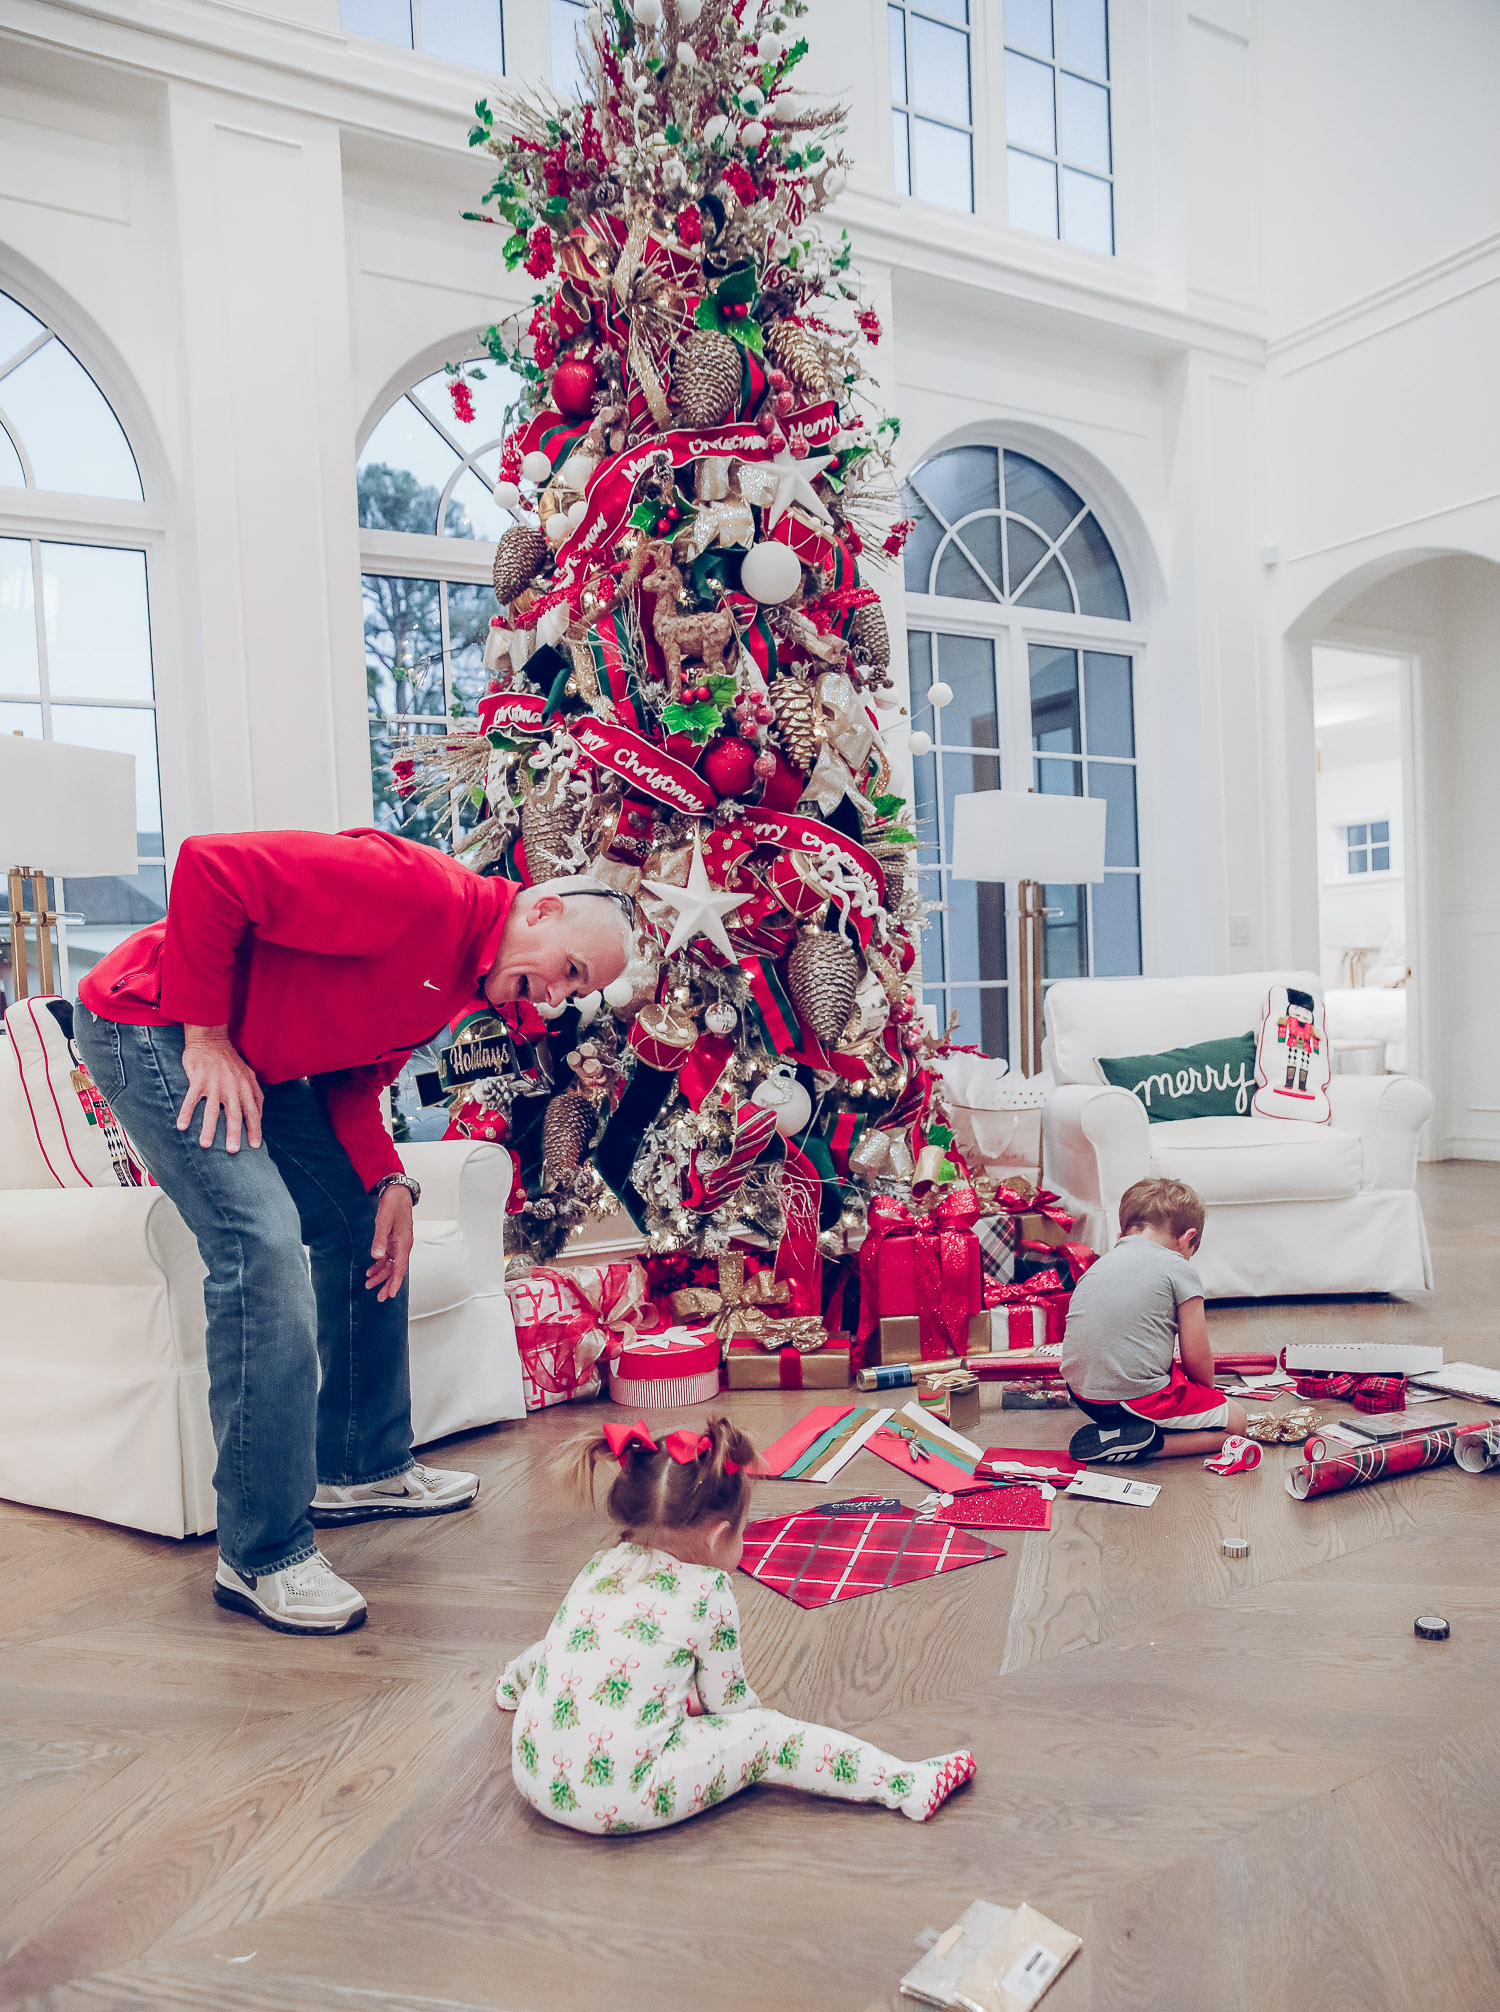 walmart gift wrap christmas 2020, shop hello holidays christmas tree, magnetic me PJs, emily ann gemma-10 |Gift Wrapping Ideas by popular US life and style blog, The Sweetest Thing: image of a little girl wearing Magnetic Me Christmas pjs sitting on the floor with her brother  while using Christmas wrapping paper supplies spread out on the floor in front of their Christmas tree.